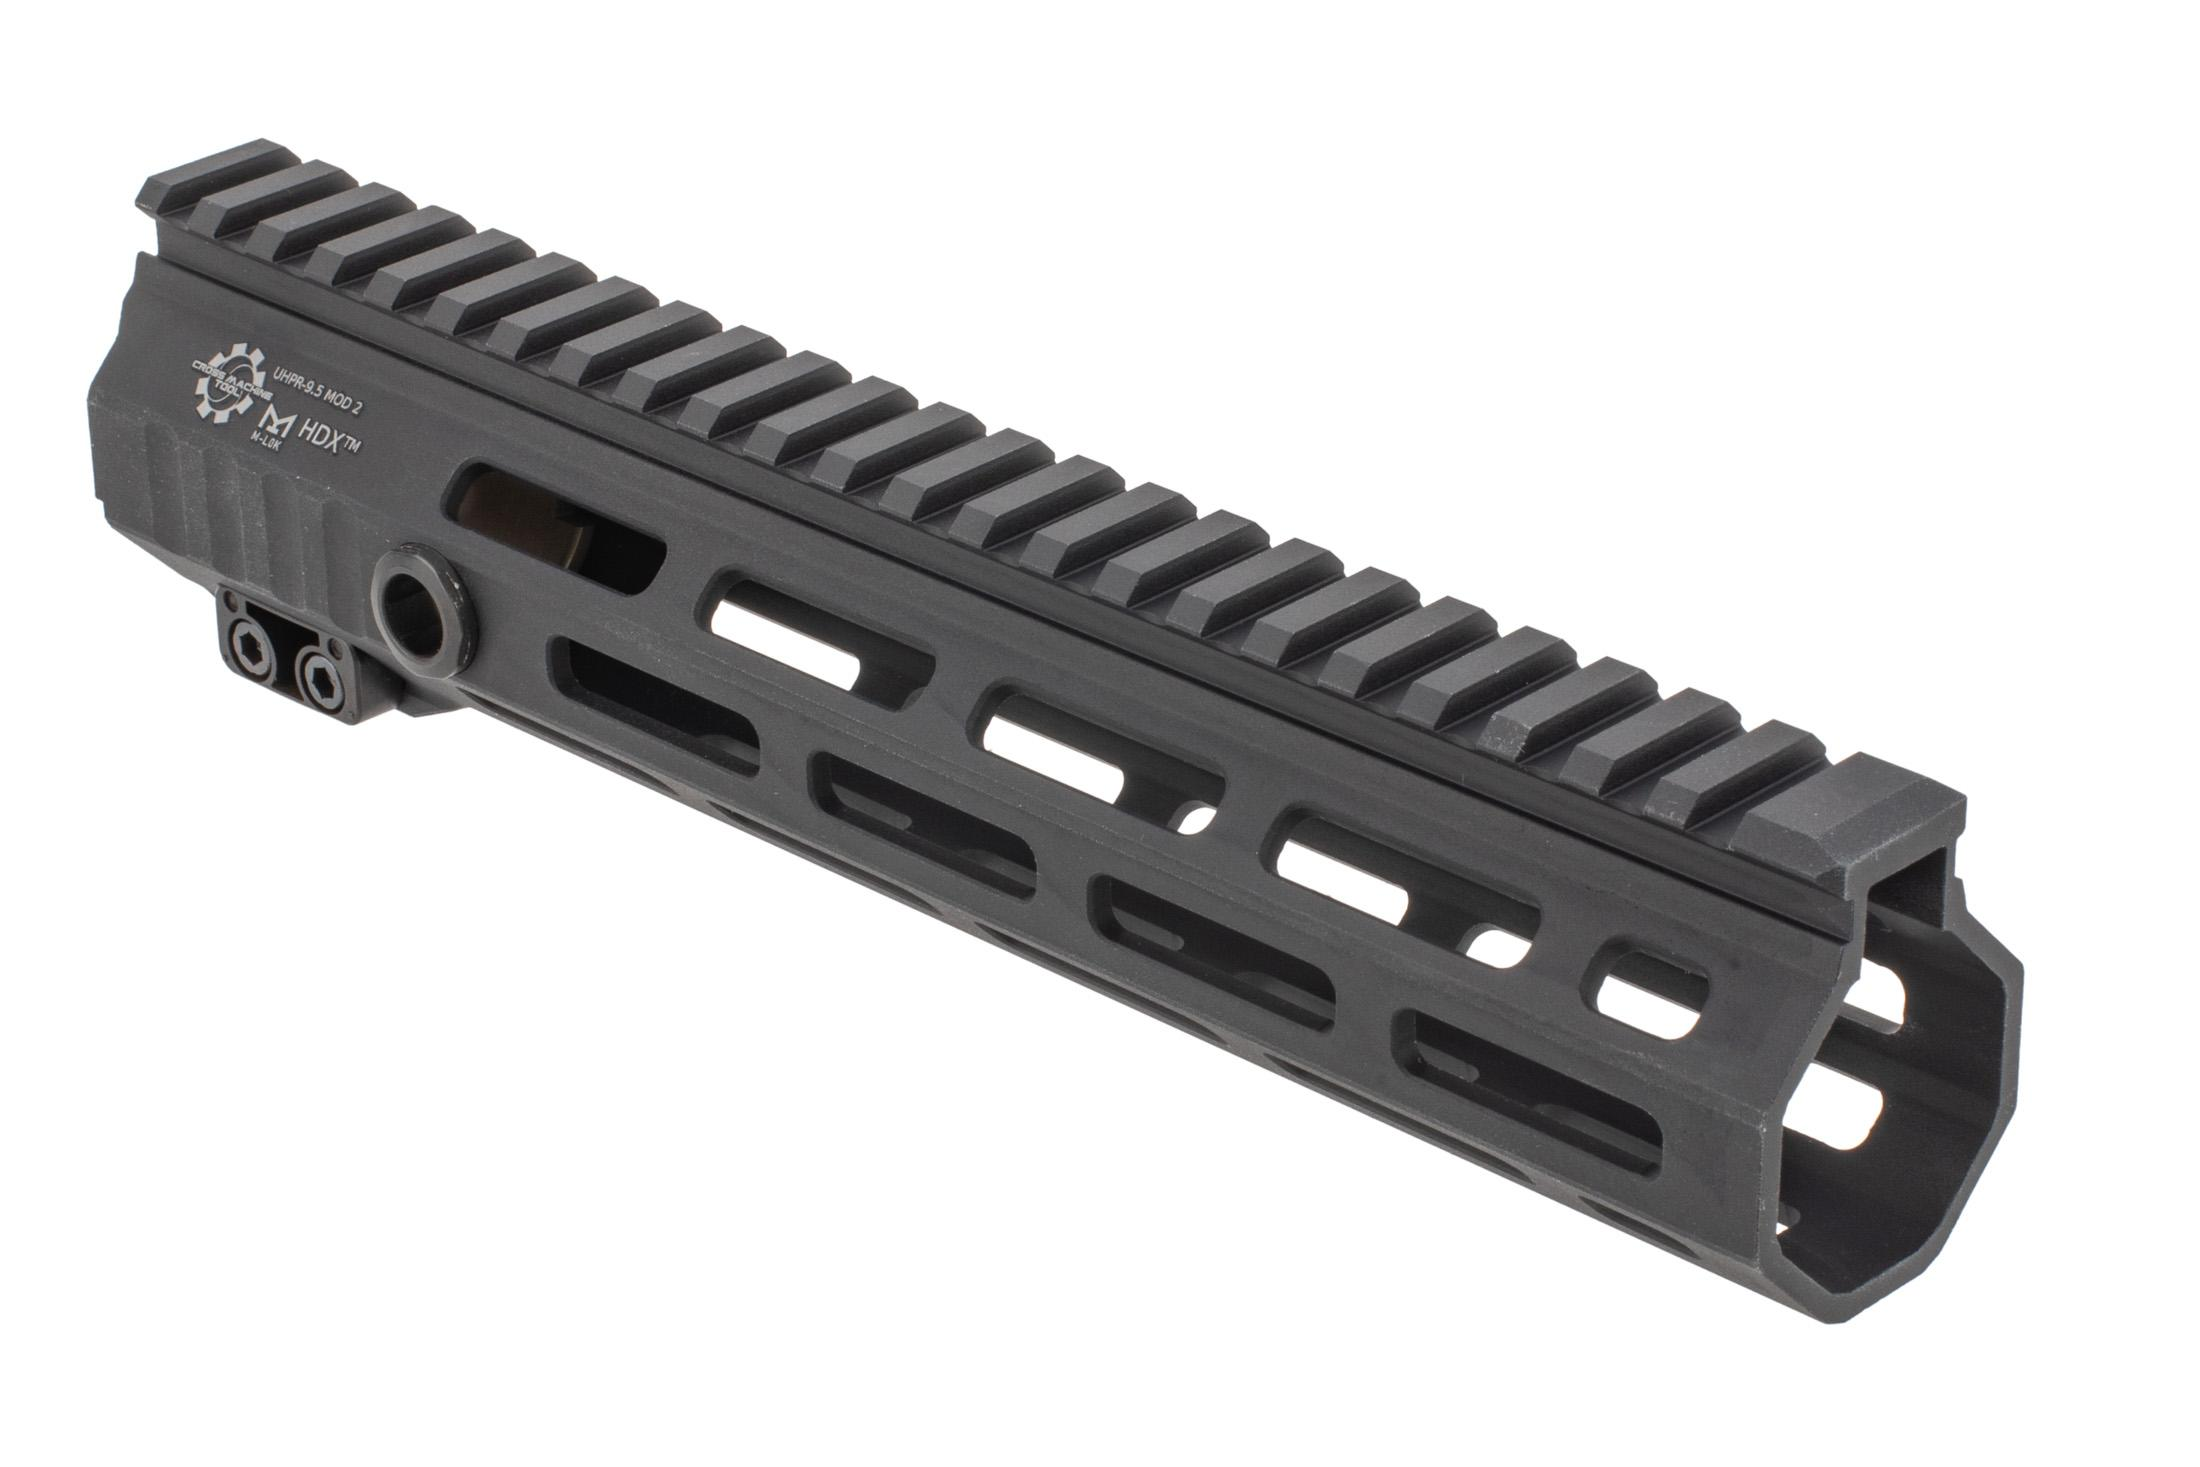 The UHPR 9.5 Mod 2 HDX M-LOK handguard features relief cuts in the picatinny rail to reduce weight